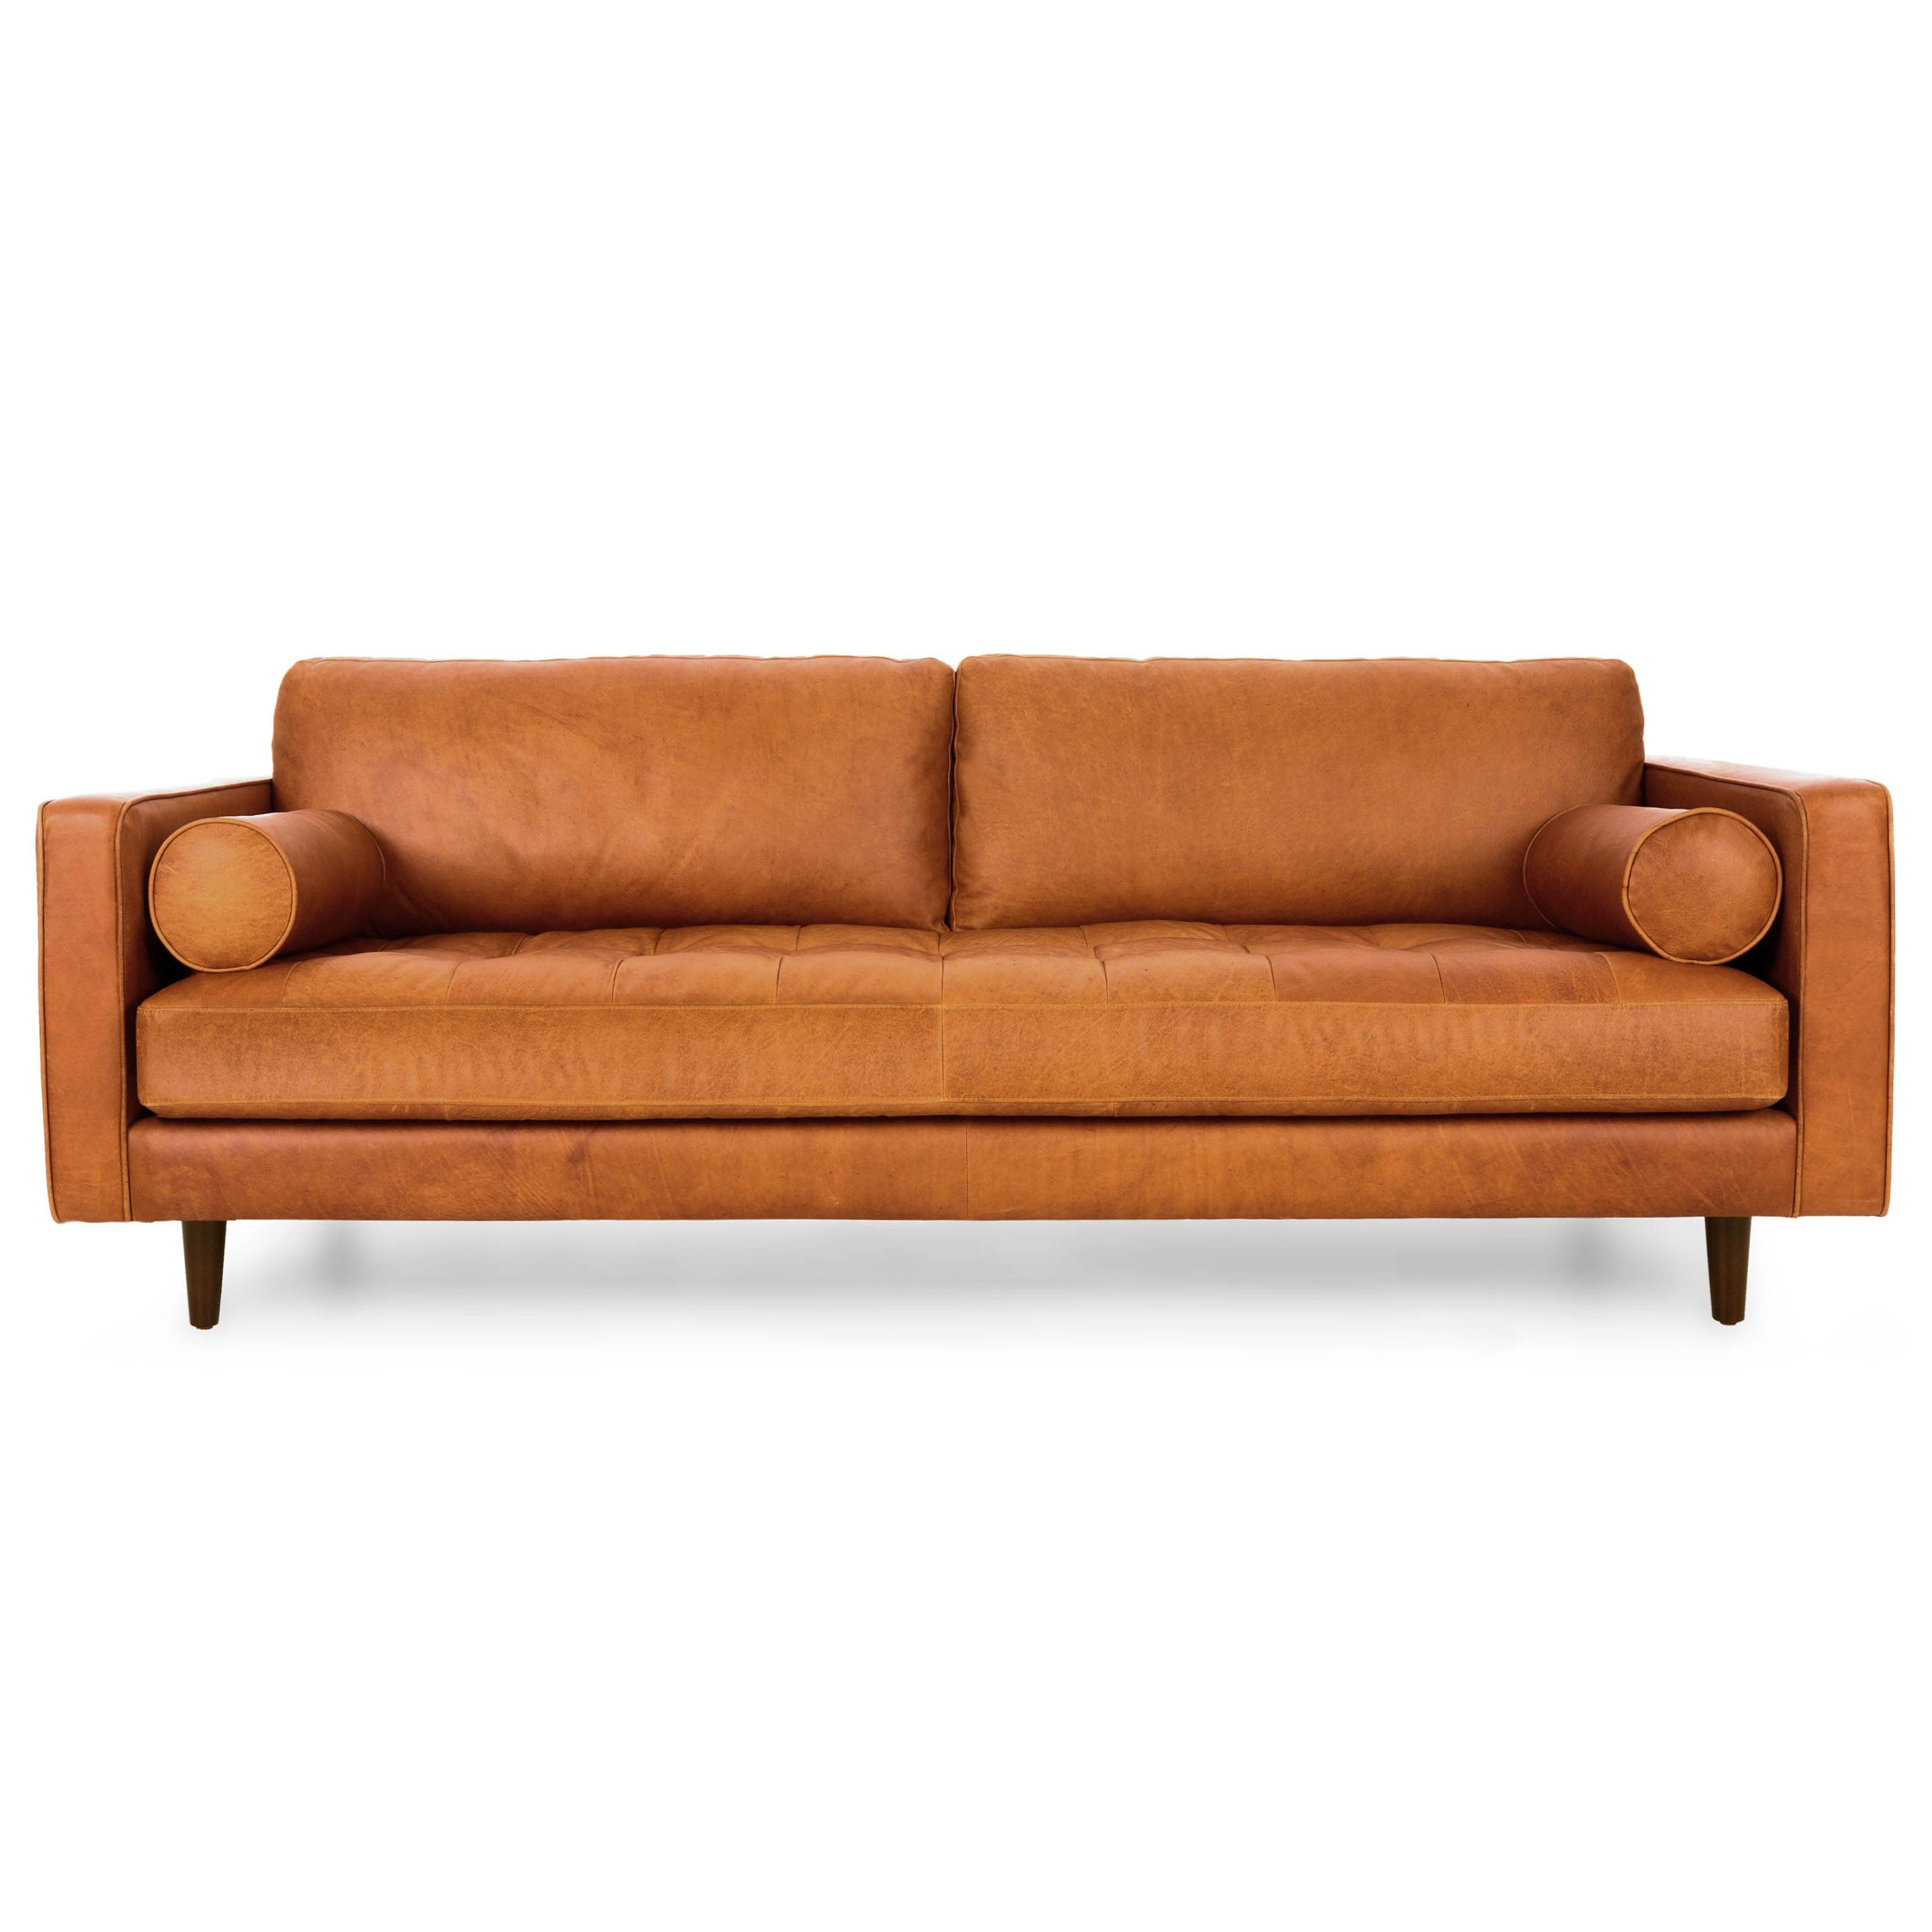 averylanehome patterned table modern pin wood coffee avery and couches couch at tan dark found